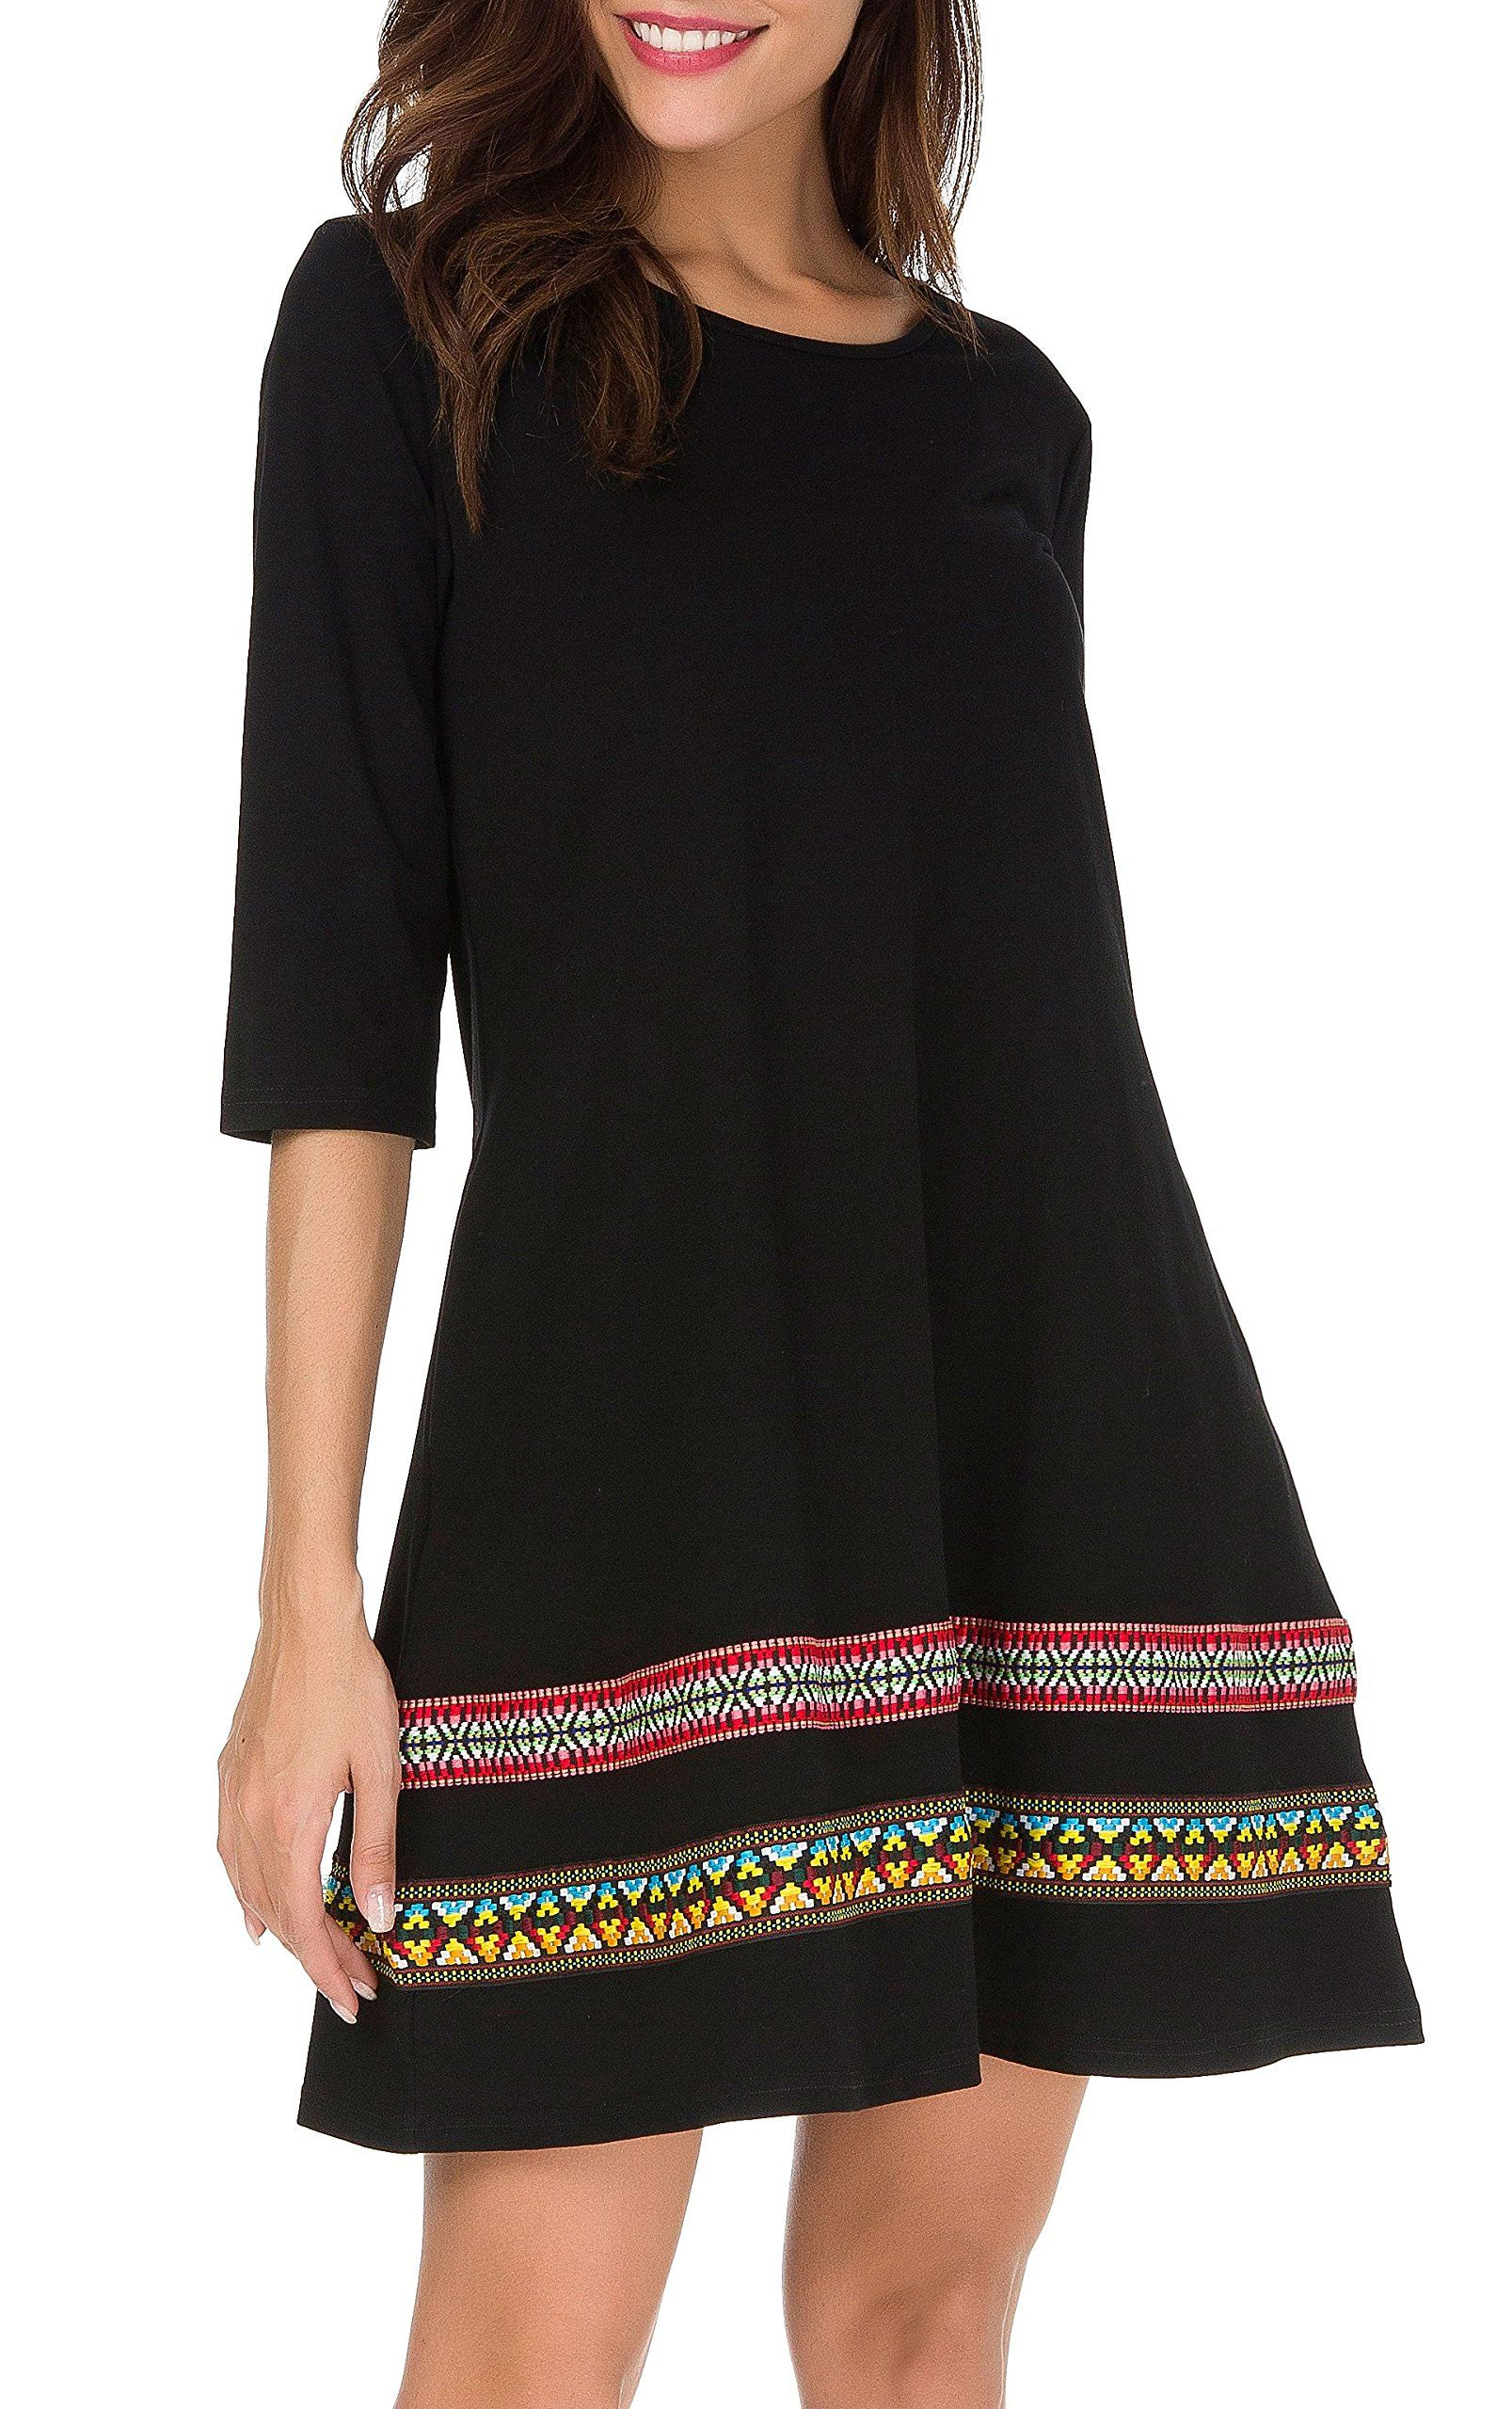 439bc2be9c7 THANTH Womens 3 4 Sleeve ALine Embroidered Loose Casual TShirt Tunic Dress  Black M -- Read more reviews of the product by visiting the link on the  image.